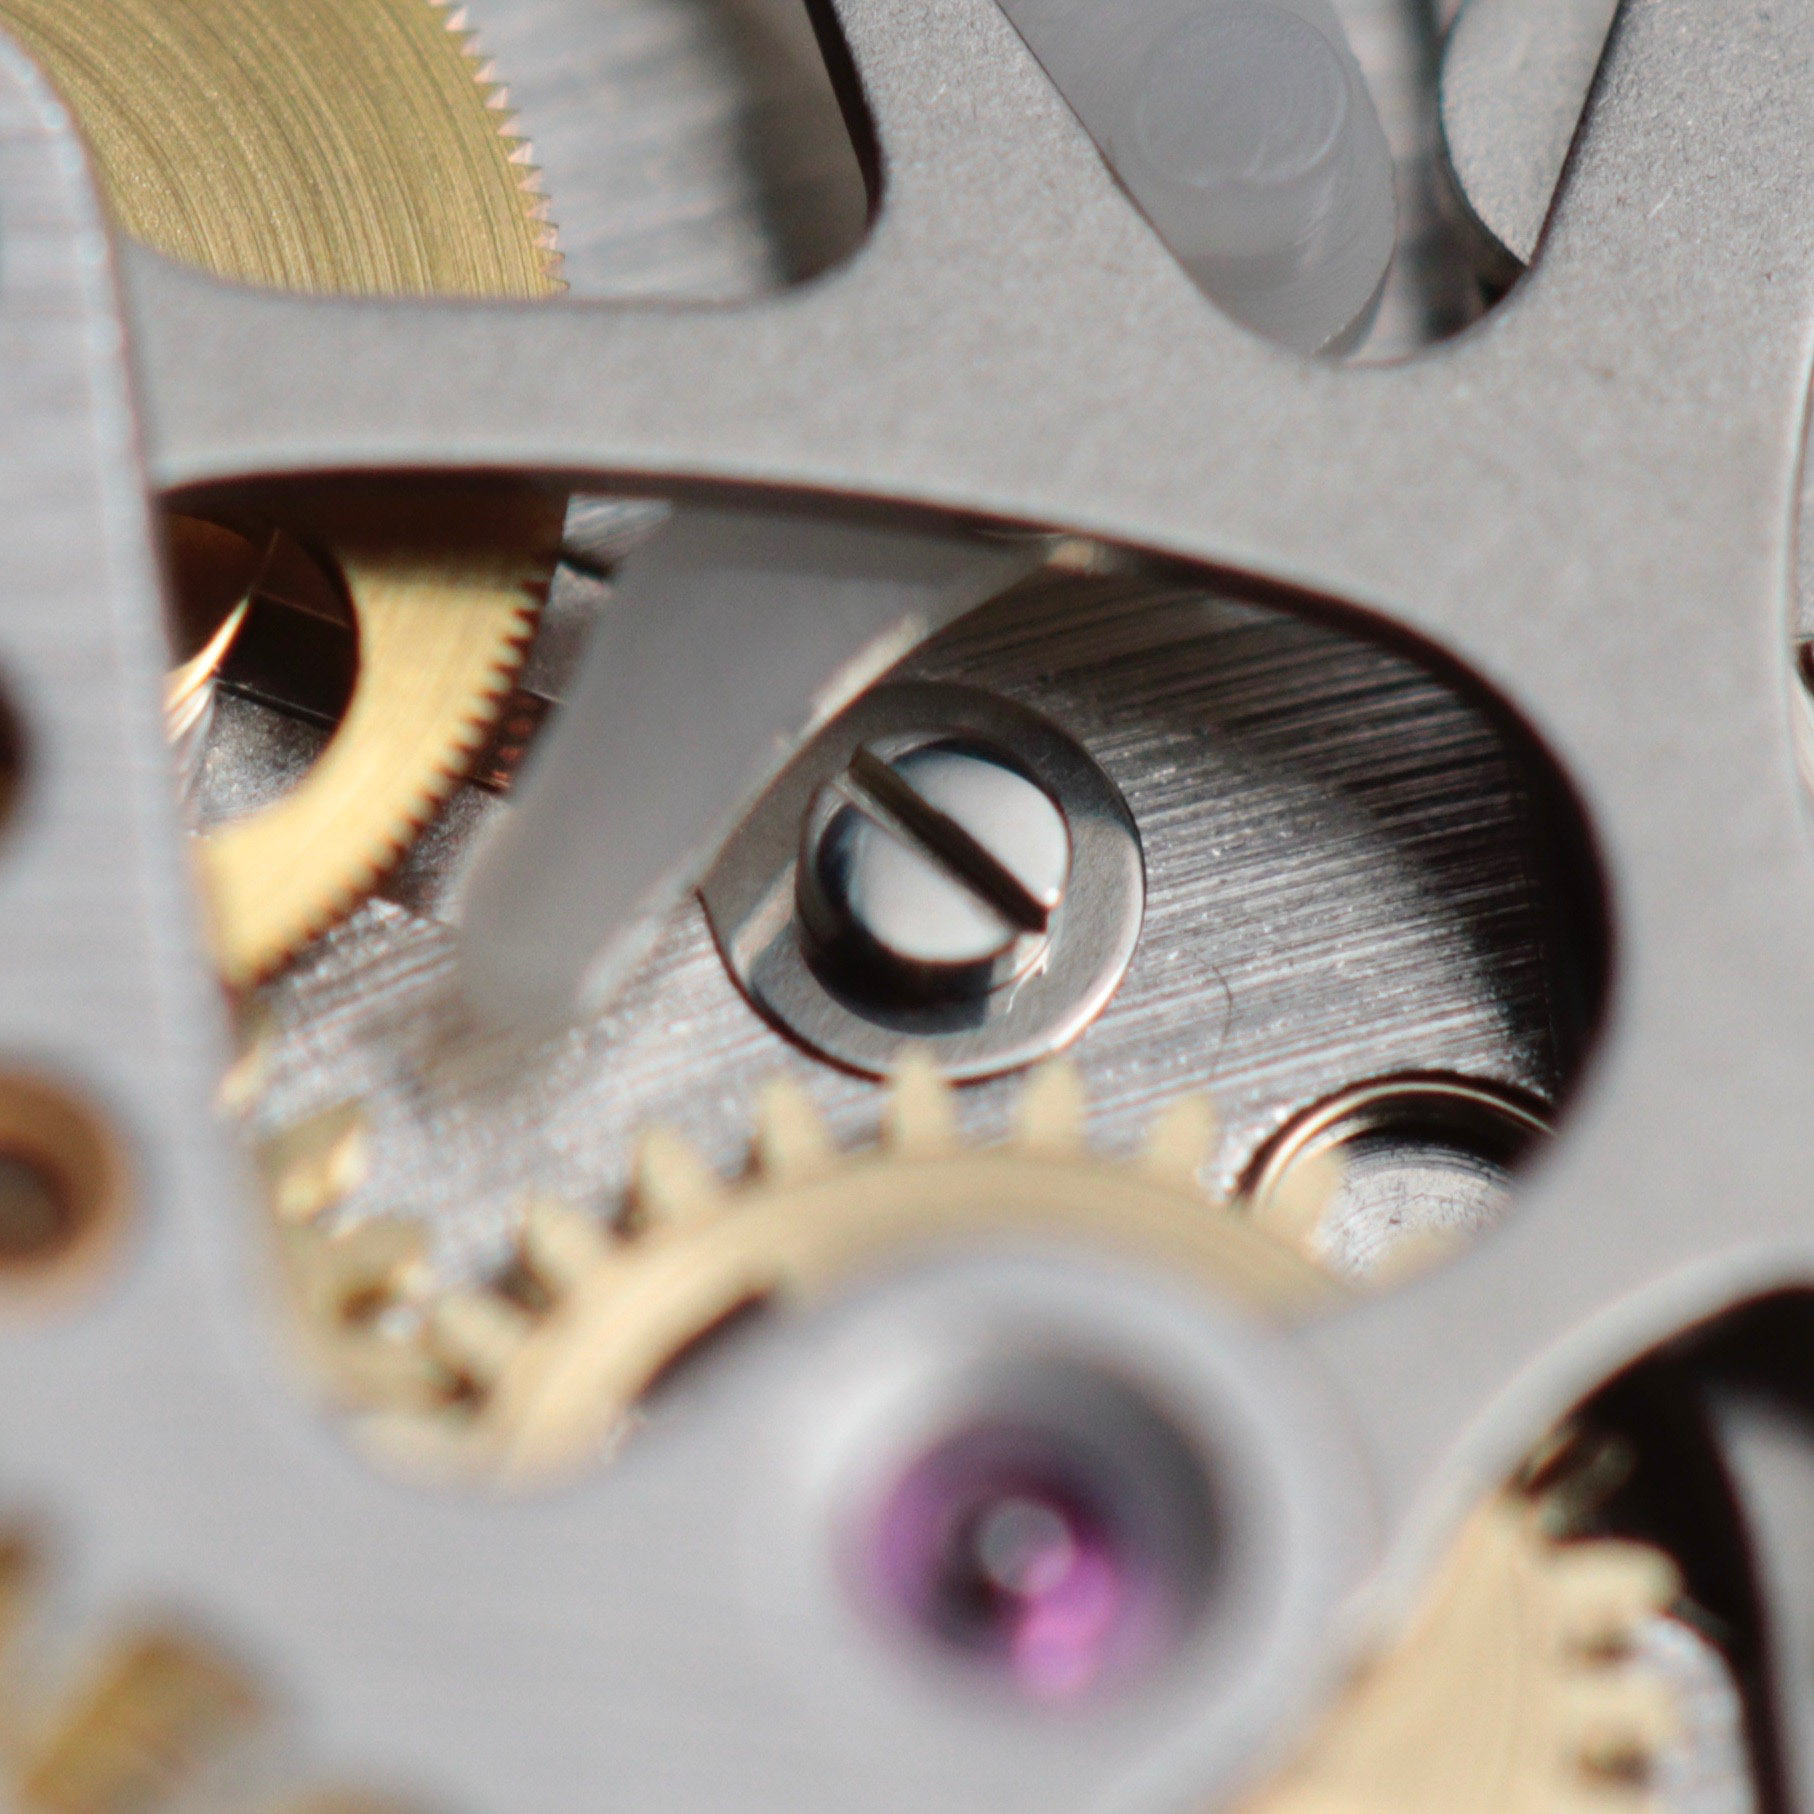 The central screw holds in placethe friction spring for the chronograph wheel, removing any slack between meshed teeth gears